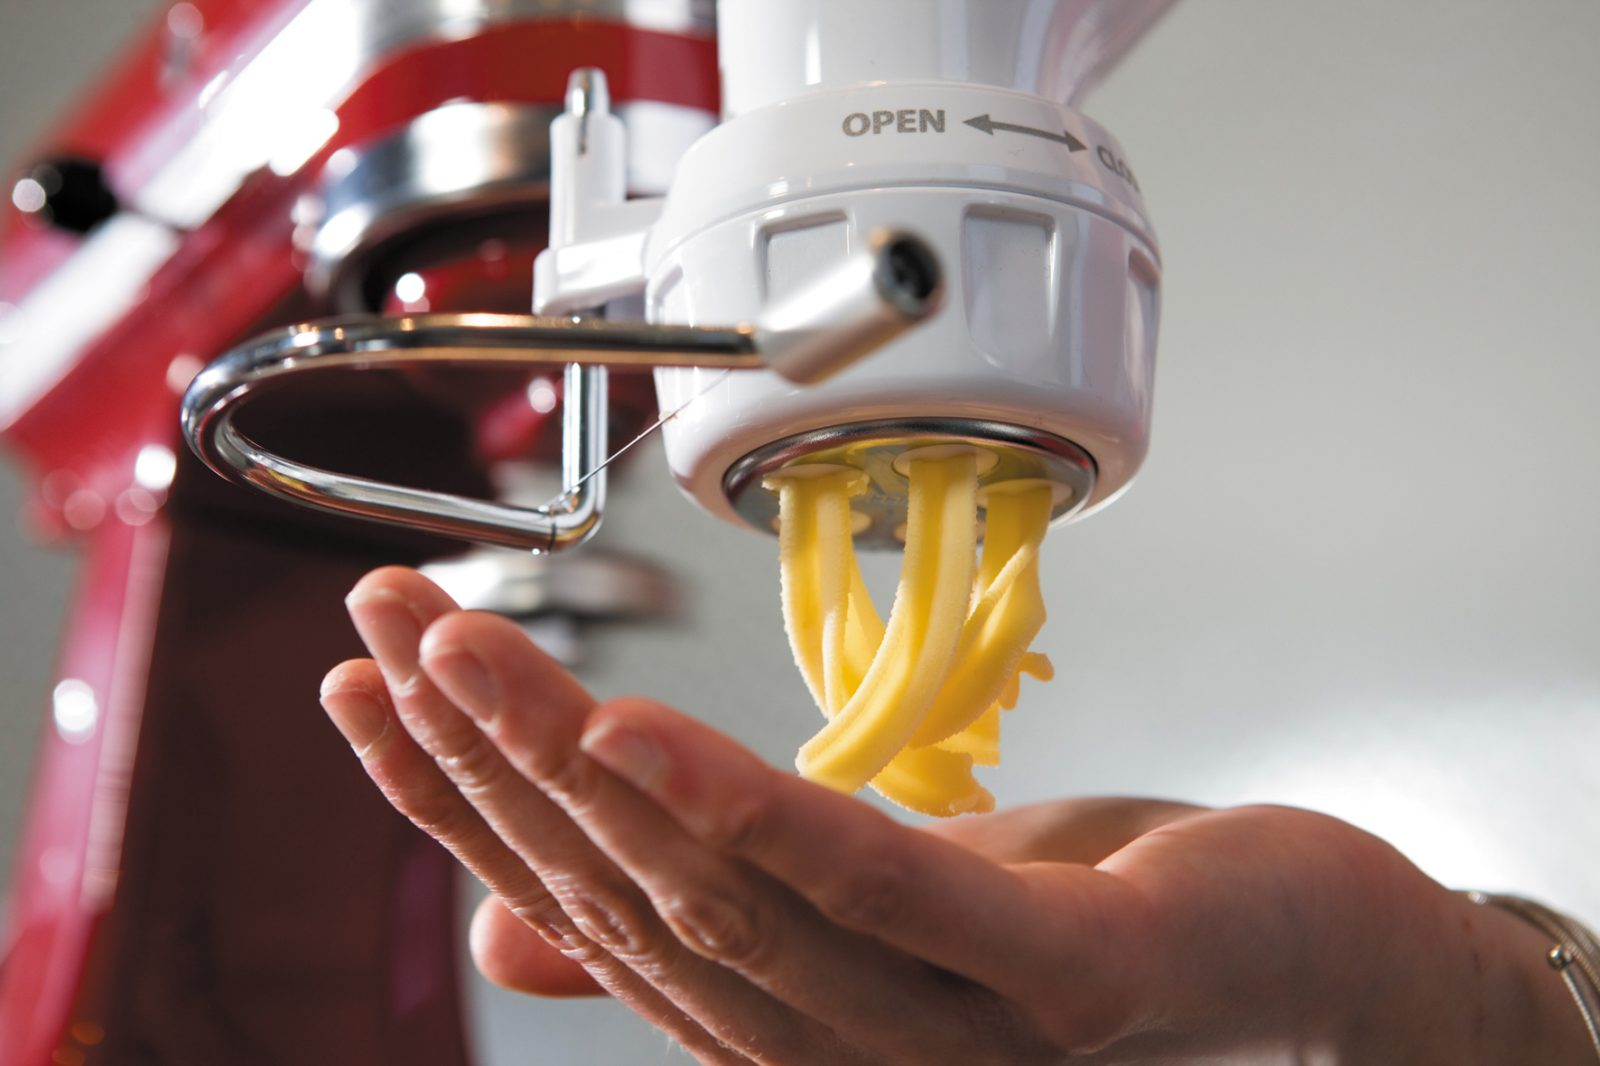 Homemade Pasta Dough - BLOG: United We CreateBLOG: UNITED WE CREATE